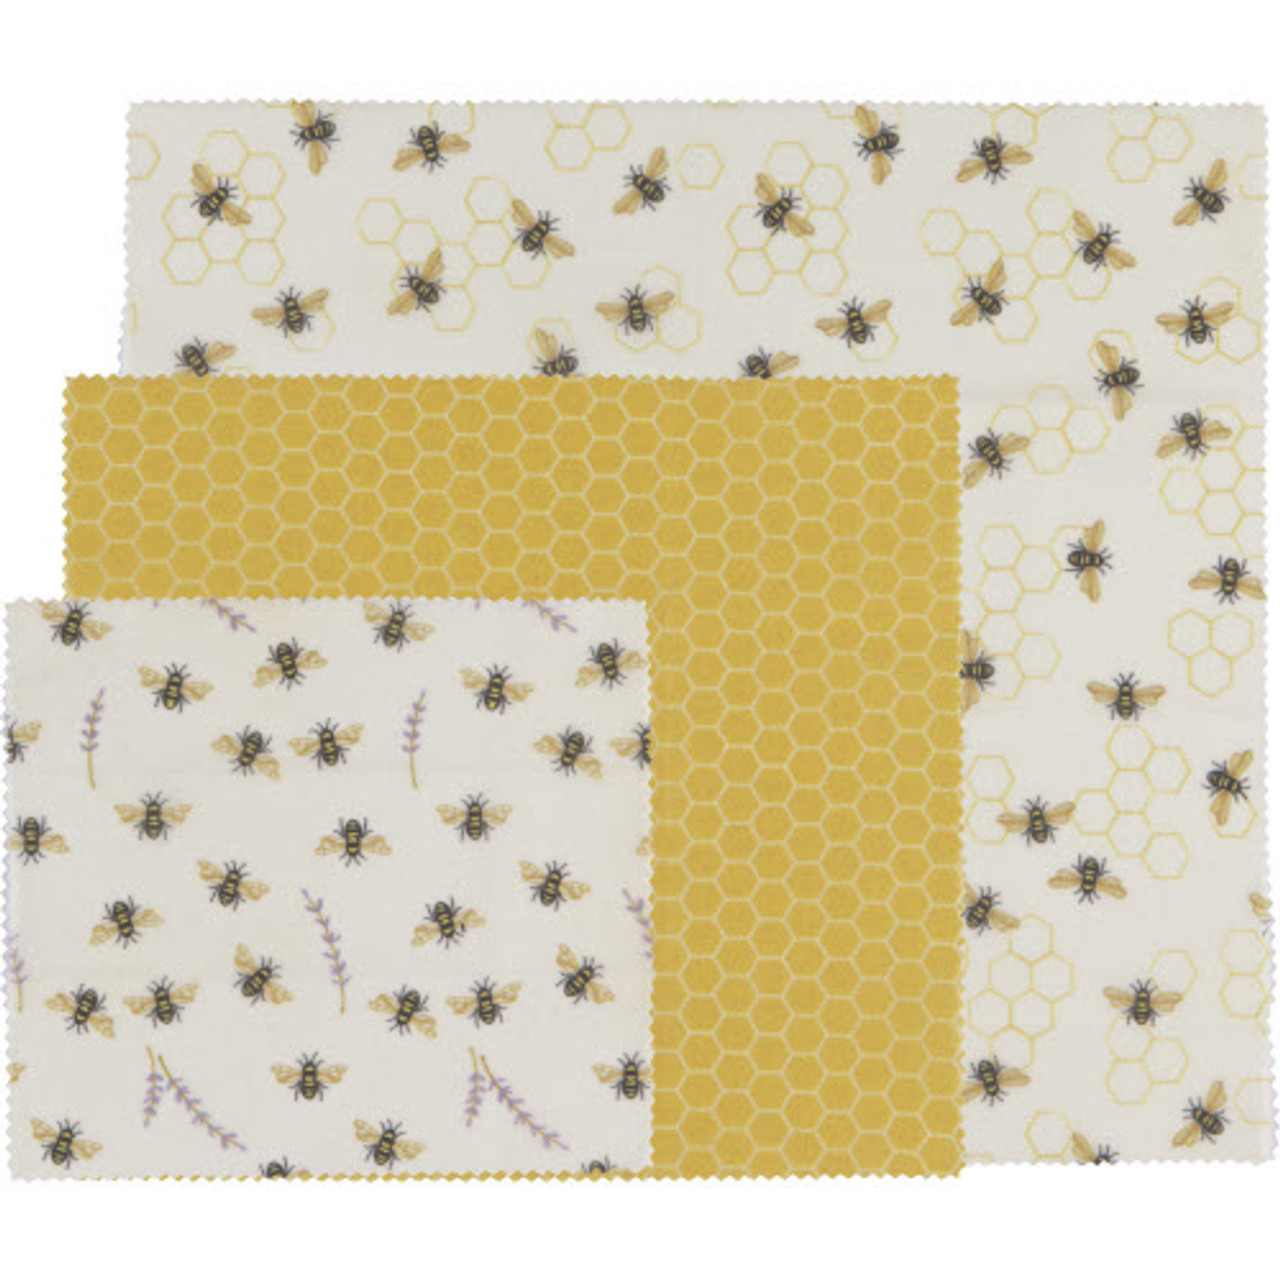 BEESWAX WRAP - BEES SET 3